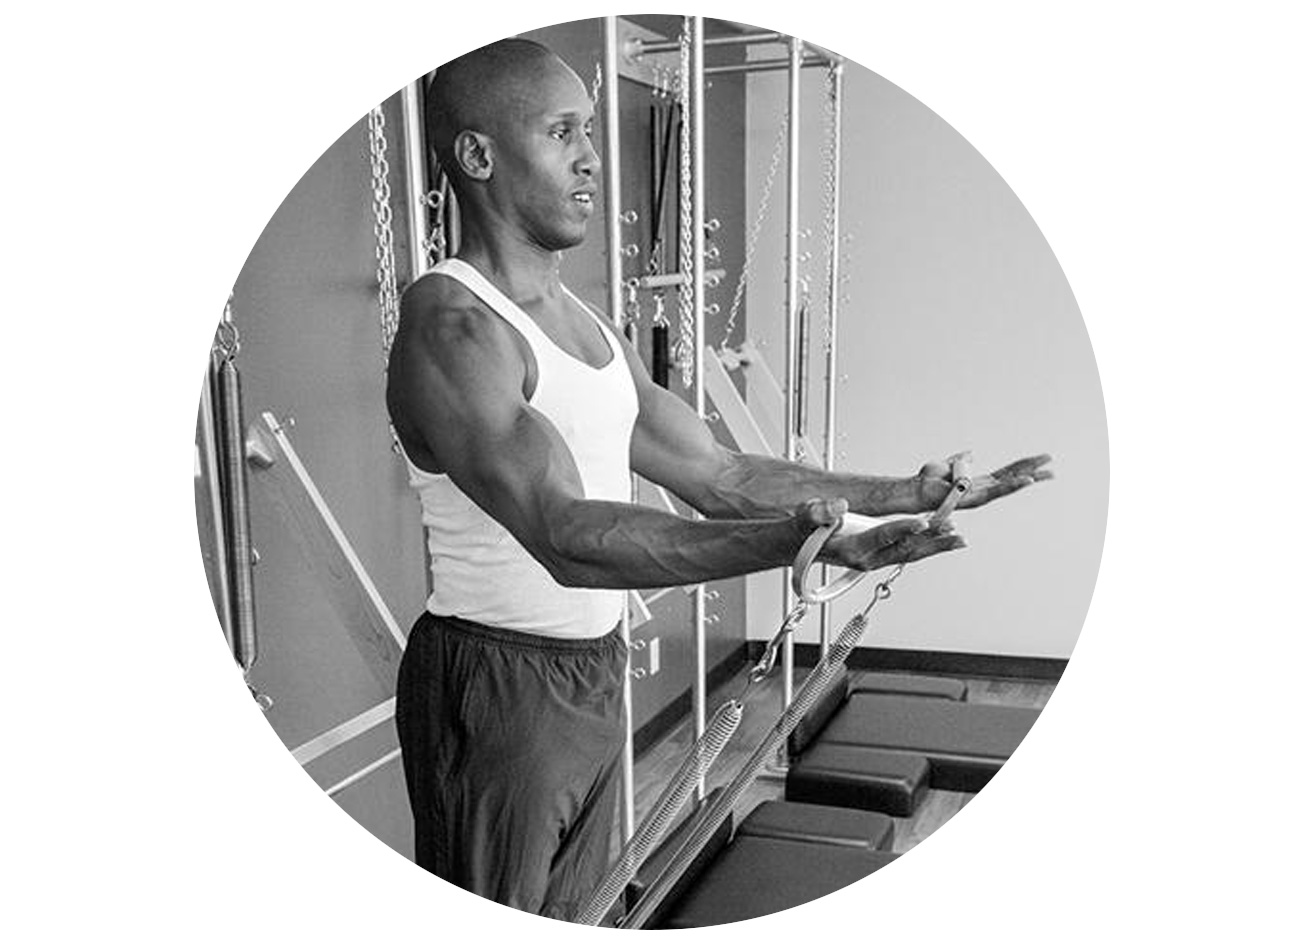 Chris Robinson - As a lifelong athlete, Chris Robinson is constantly in pursuit of peak performance. With great passion and energy, the Houston native brings that drive to the service of his clients, including Oprah Winfrey, for whom he acts as personal core coach.A certified Pilates instructor and author of 'The Core Connection' with more than 20 years of fitness professional experience, Chris learned his craft directly from Pilates legend Romana Kryzanowska and continues to learn from Jay Grimes. He is a two-time Muay Thai kickboxing champion, trained by Saekson Janjira and was a collegiate track and field athlete at San Diego State University, where he earned a degree in Kinesiology.